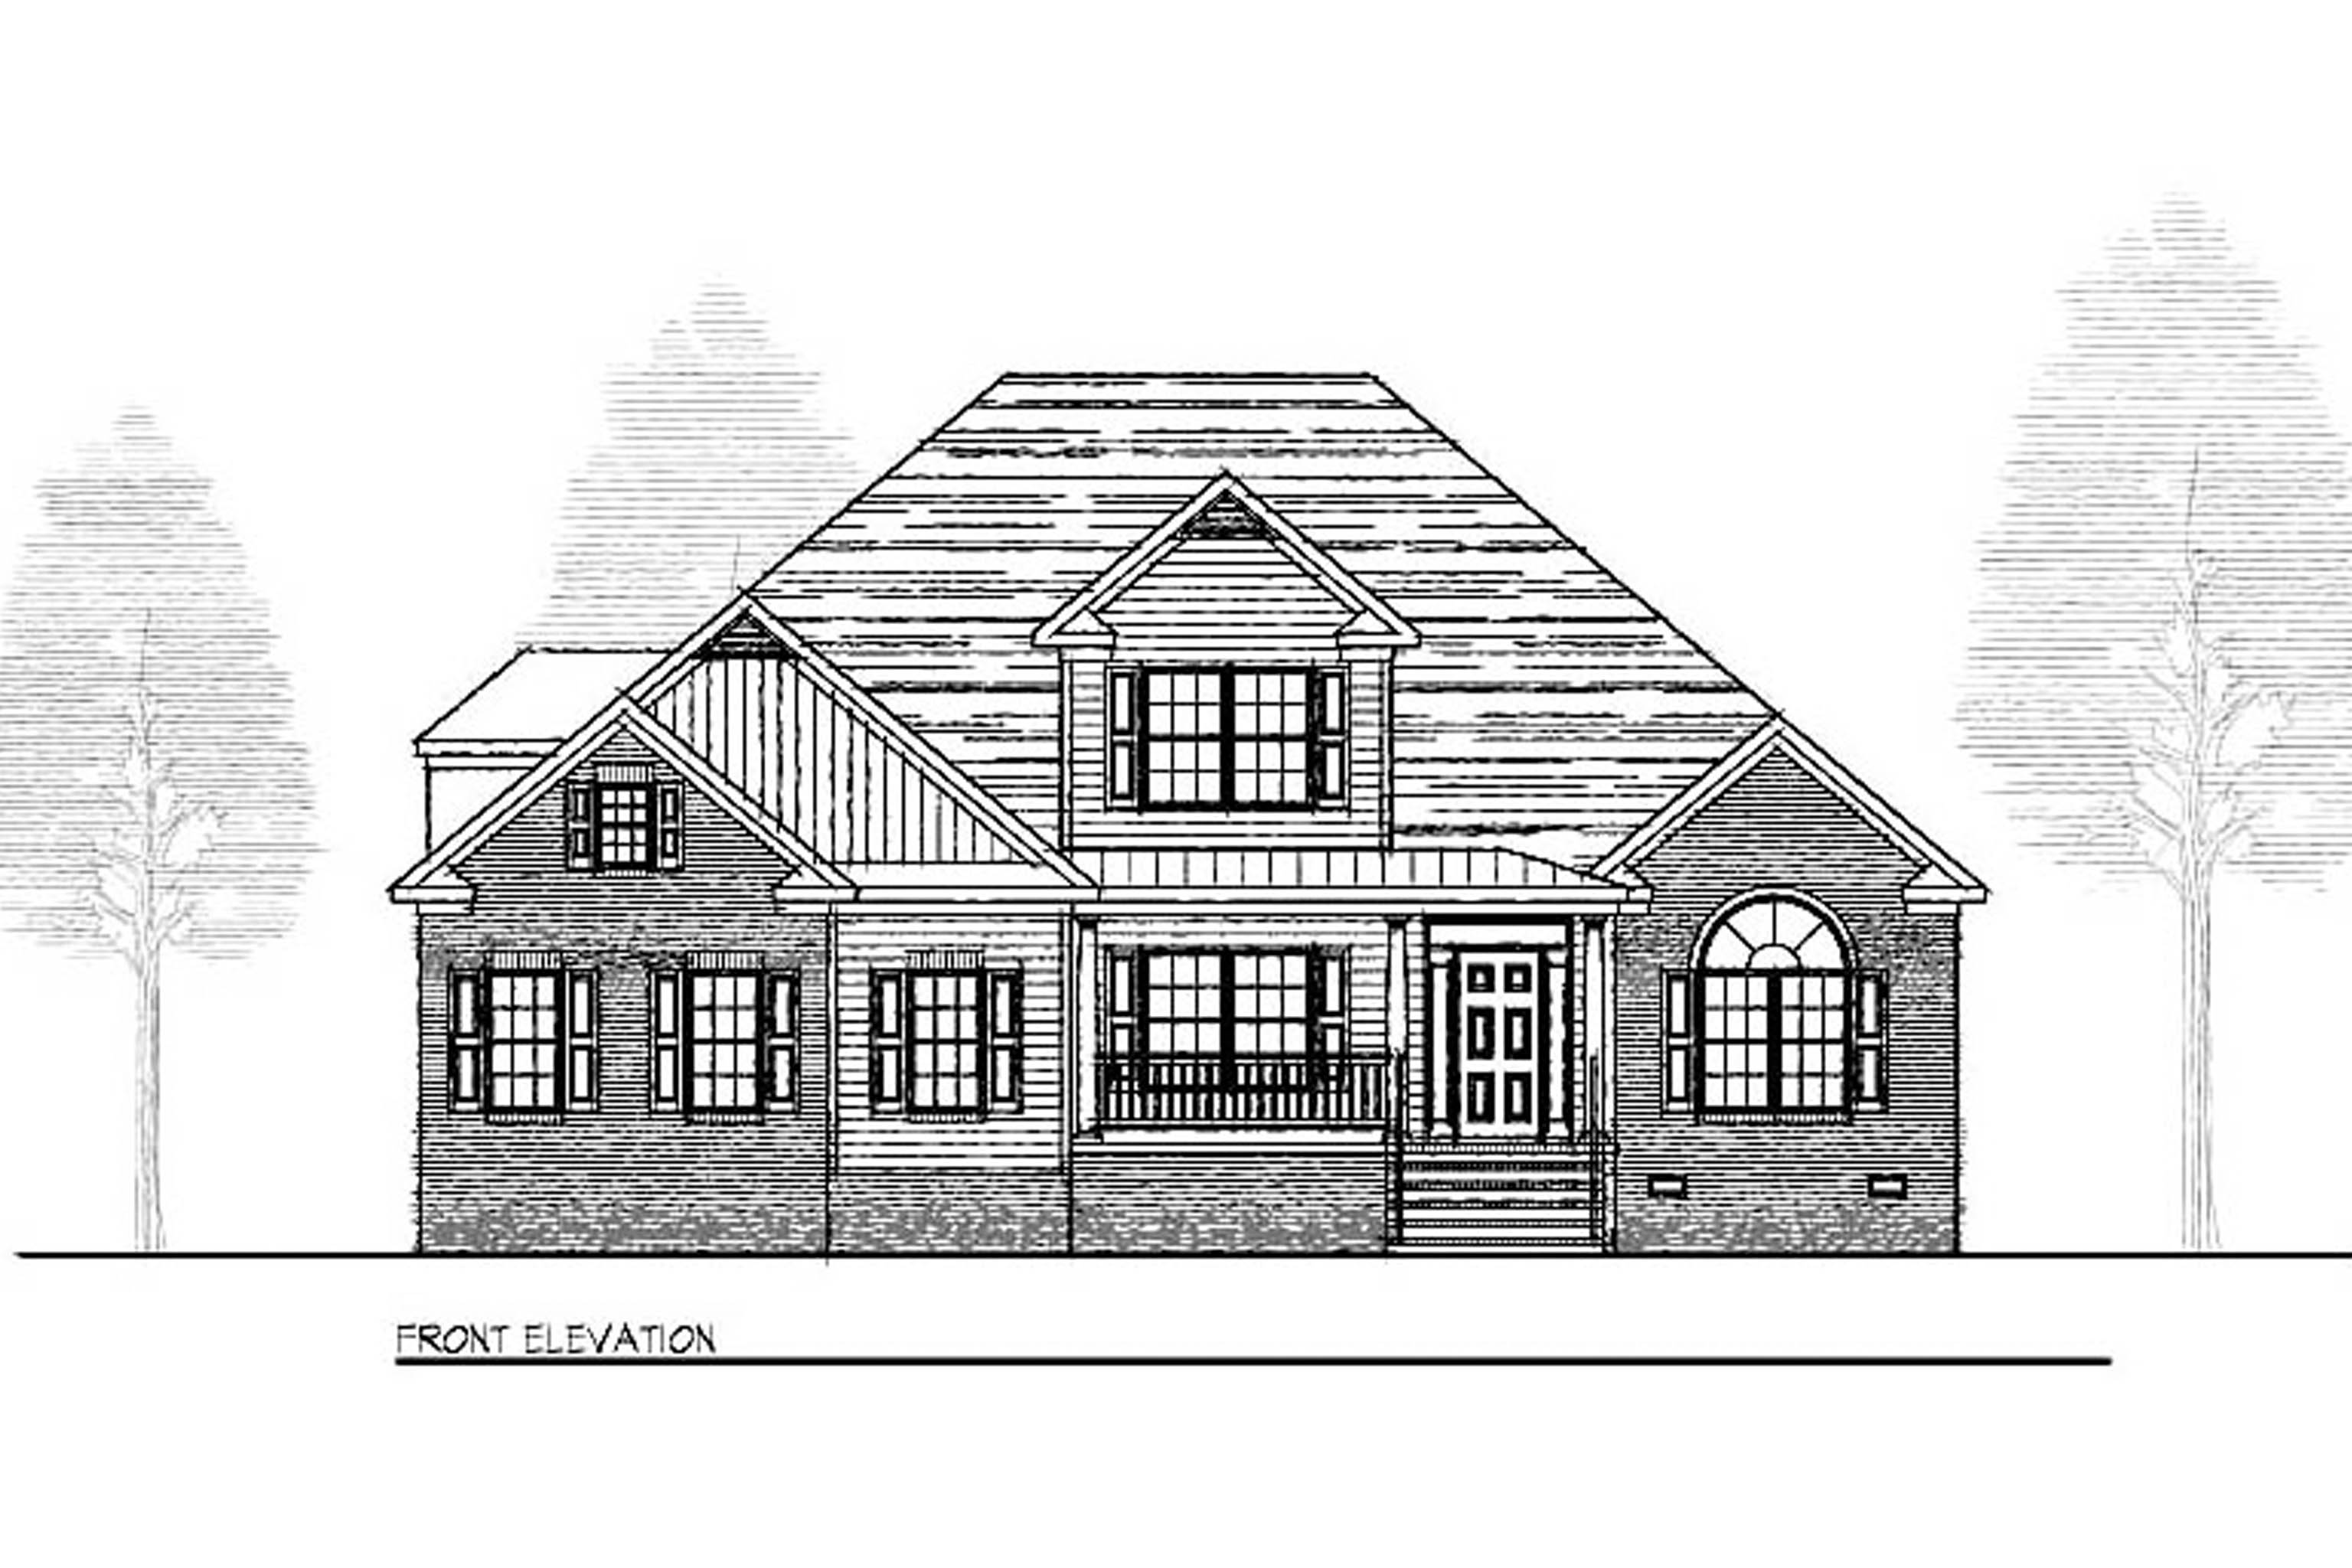 House Plan 133 - Long Bay